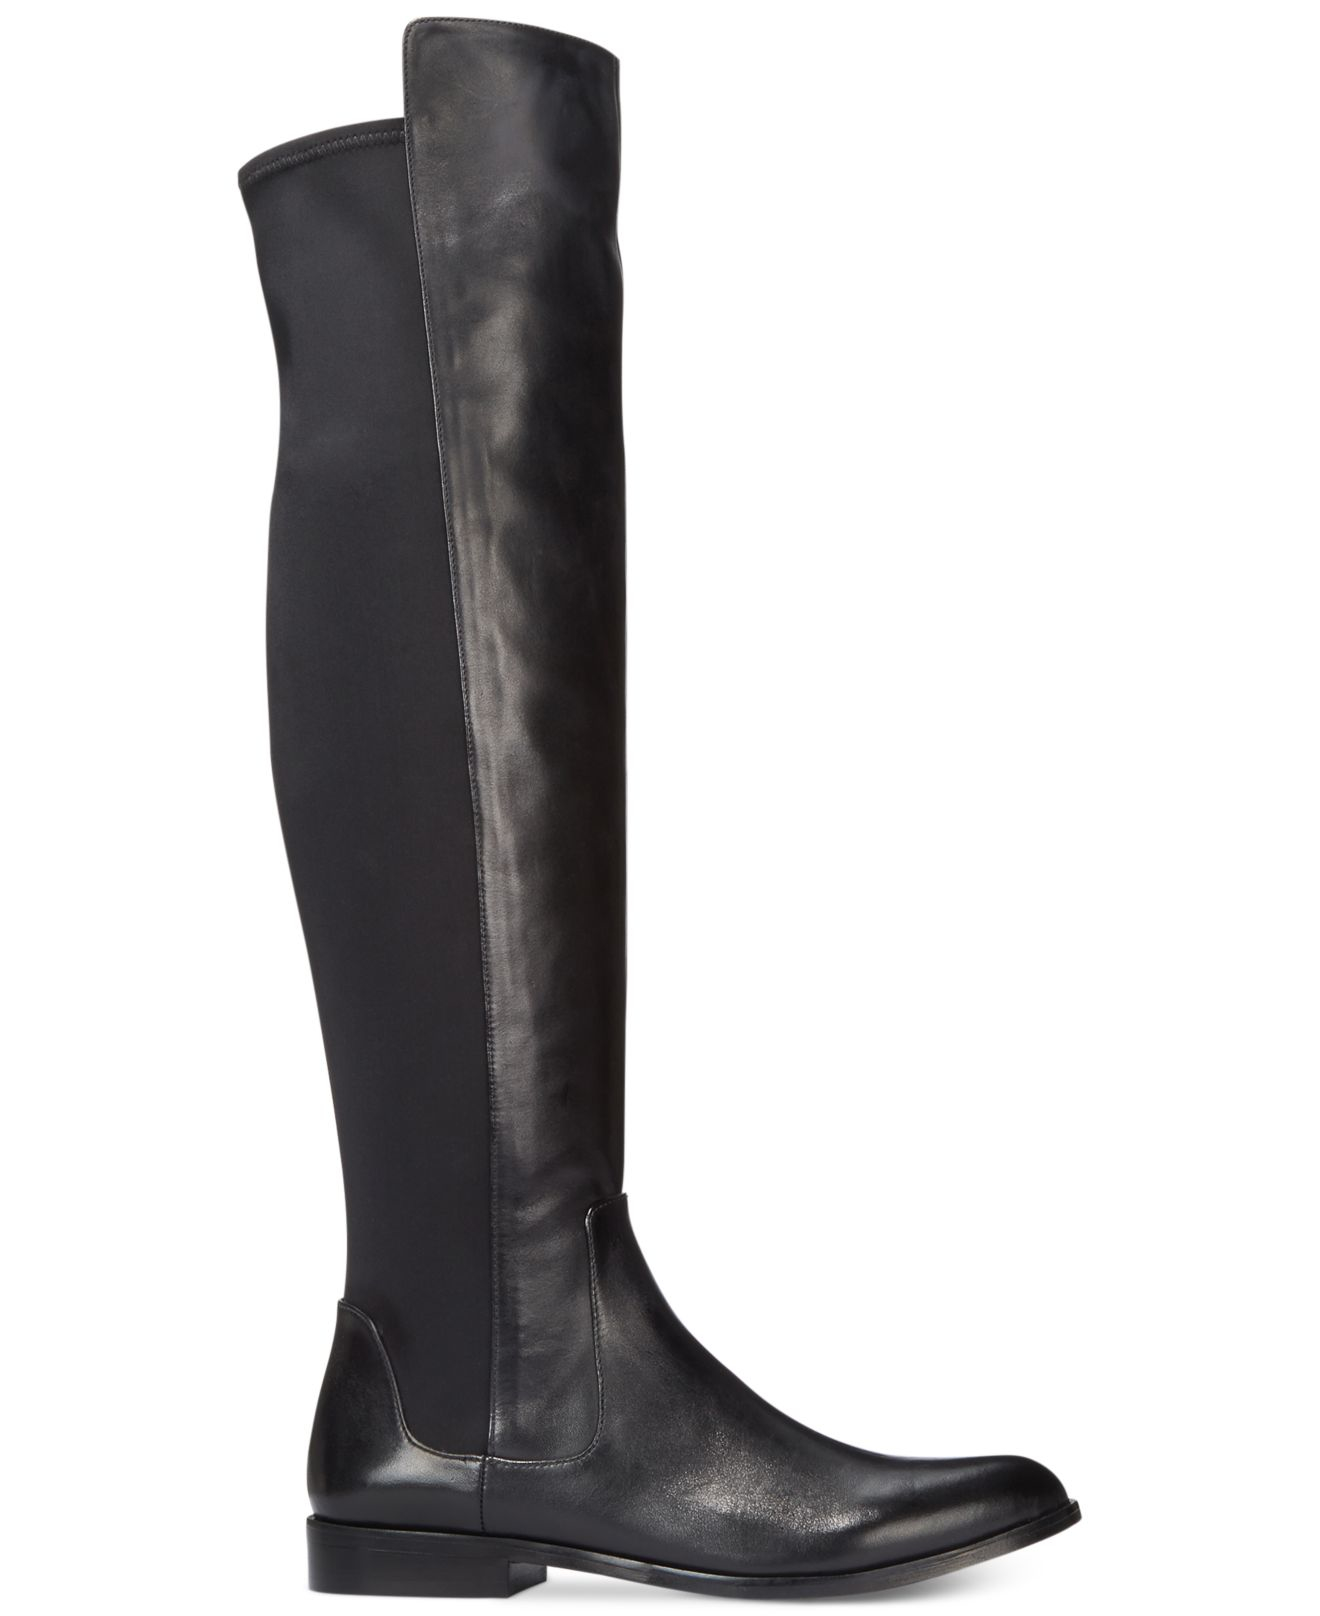 c7129d617e2 Lyst - Clarks Somerset Women s Bizzy Girl Over-the-knee Boots in Black